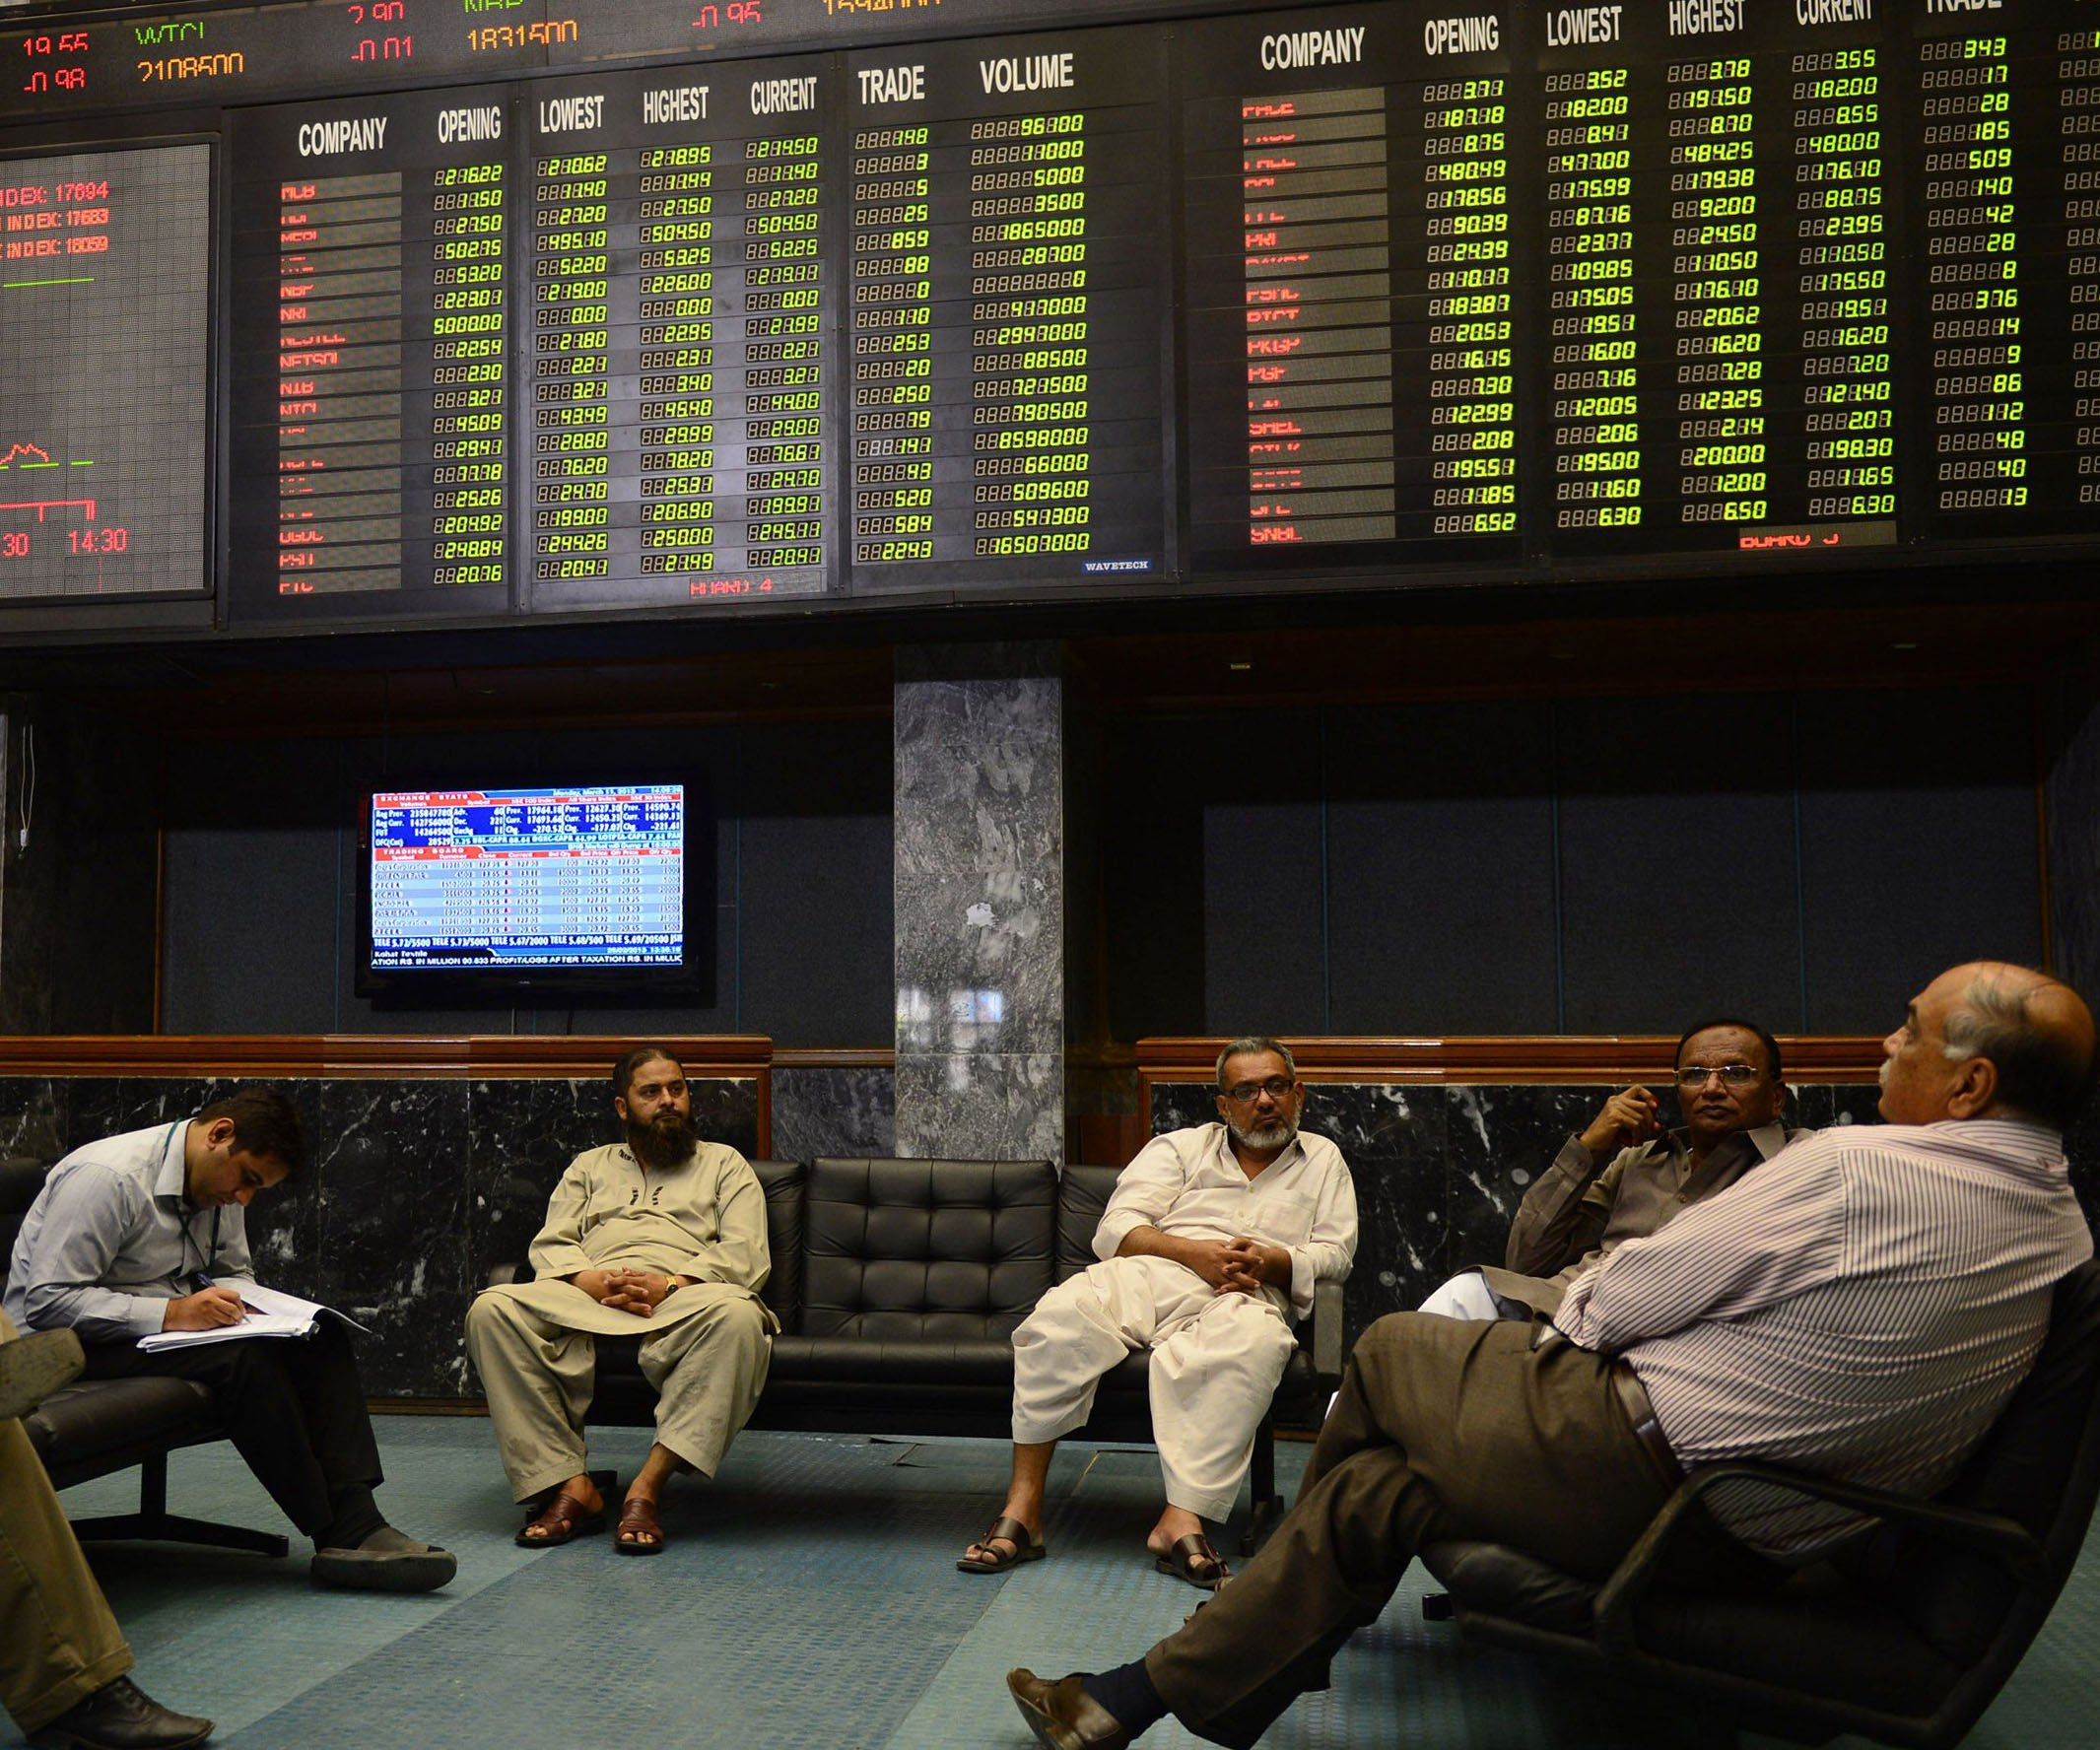 benchmark-index-loses-180-13-points-to-settle-at-31-000-67-photo-afp